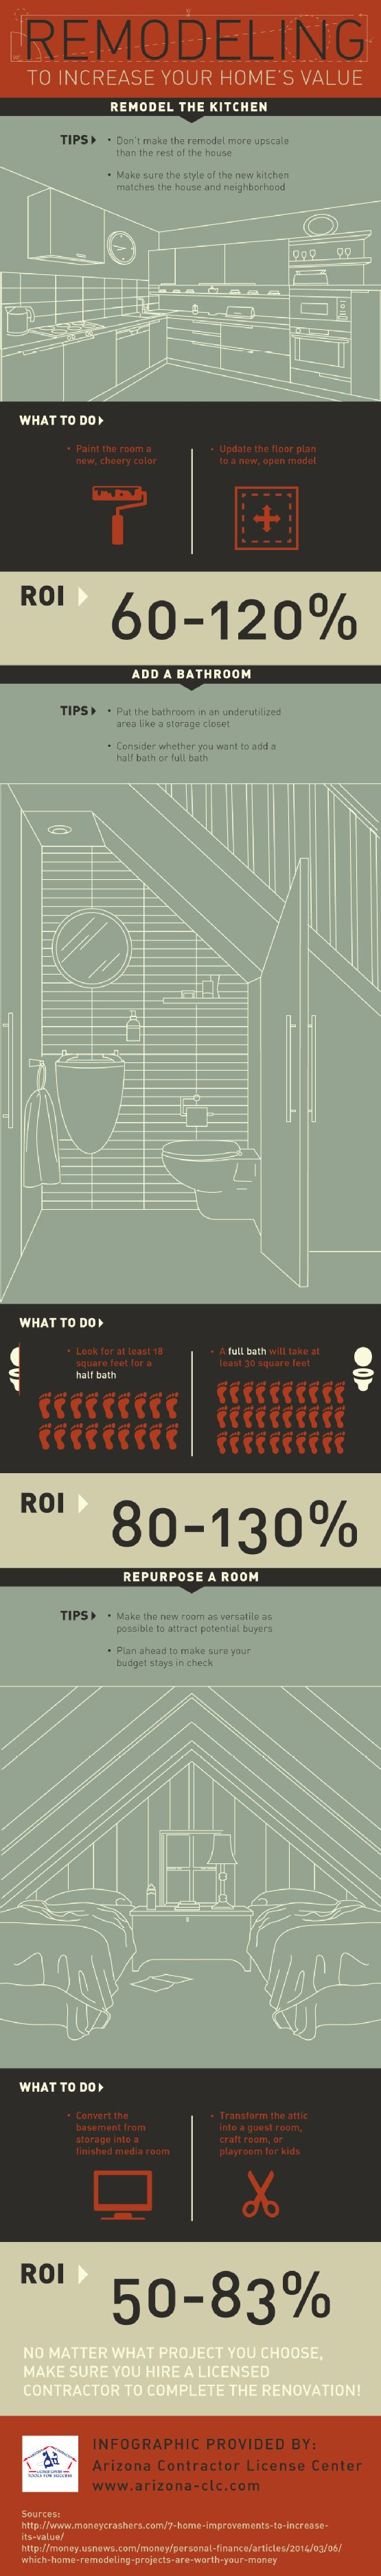 Bathroom Renovation License 39 best contractors images on pinterest | infographics